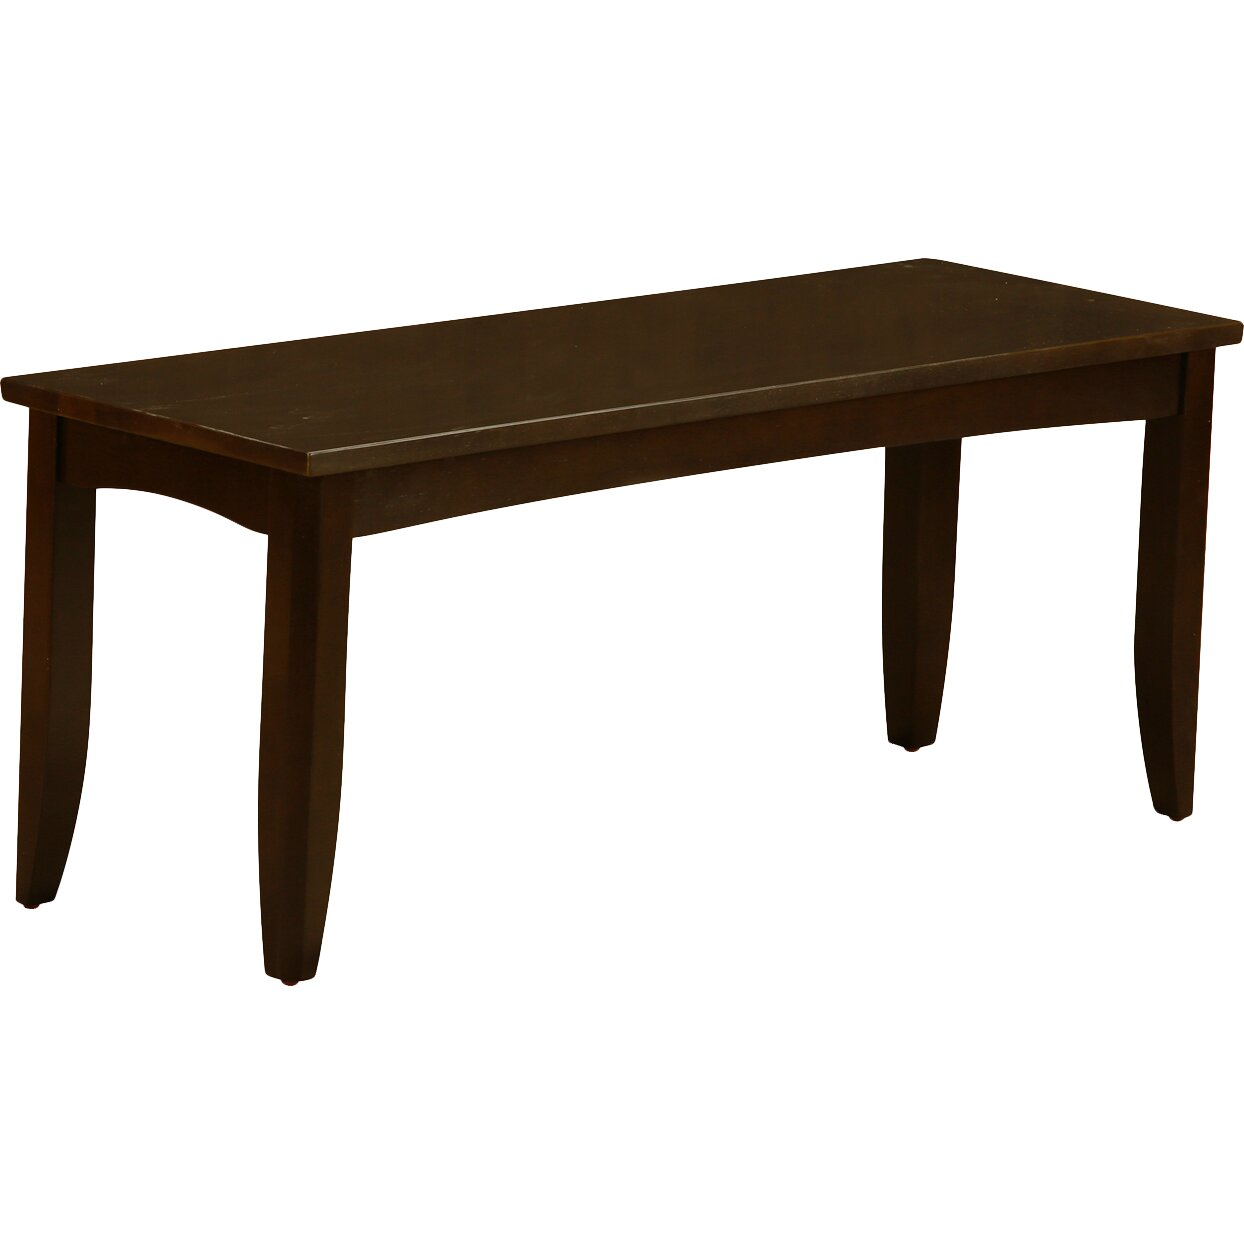 East West Parfait Wood Kitchen Bench Reviews Wayfair